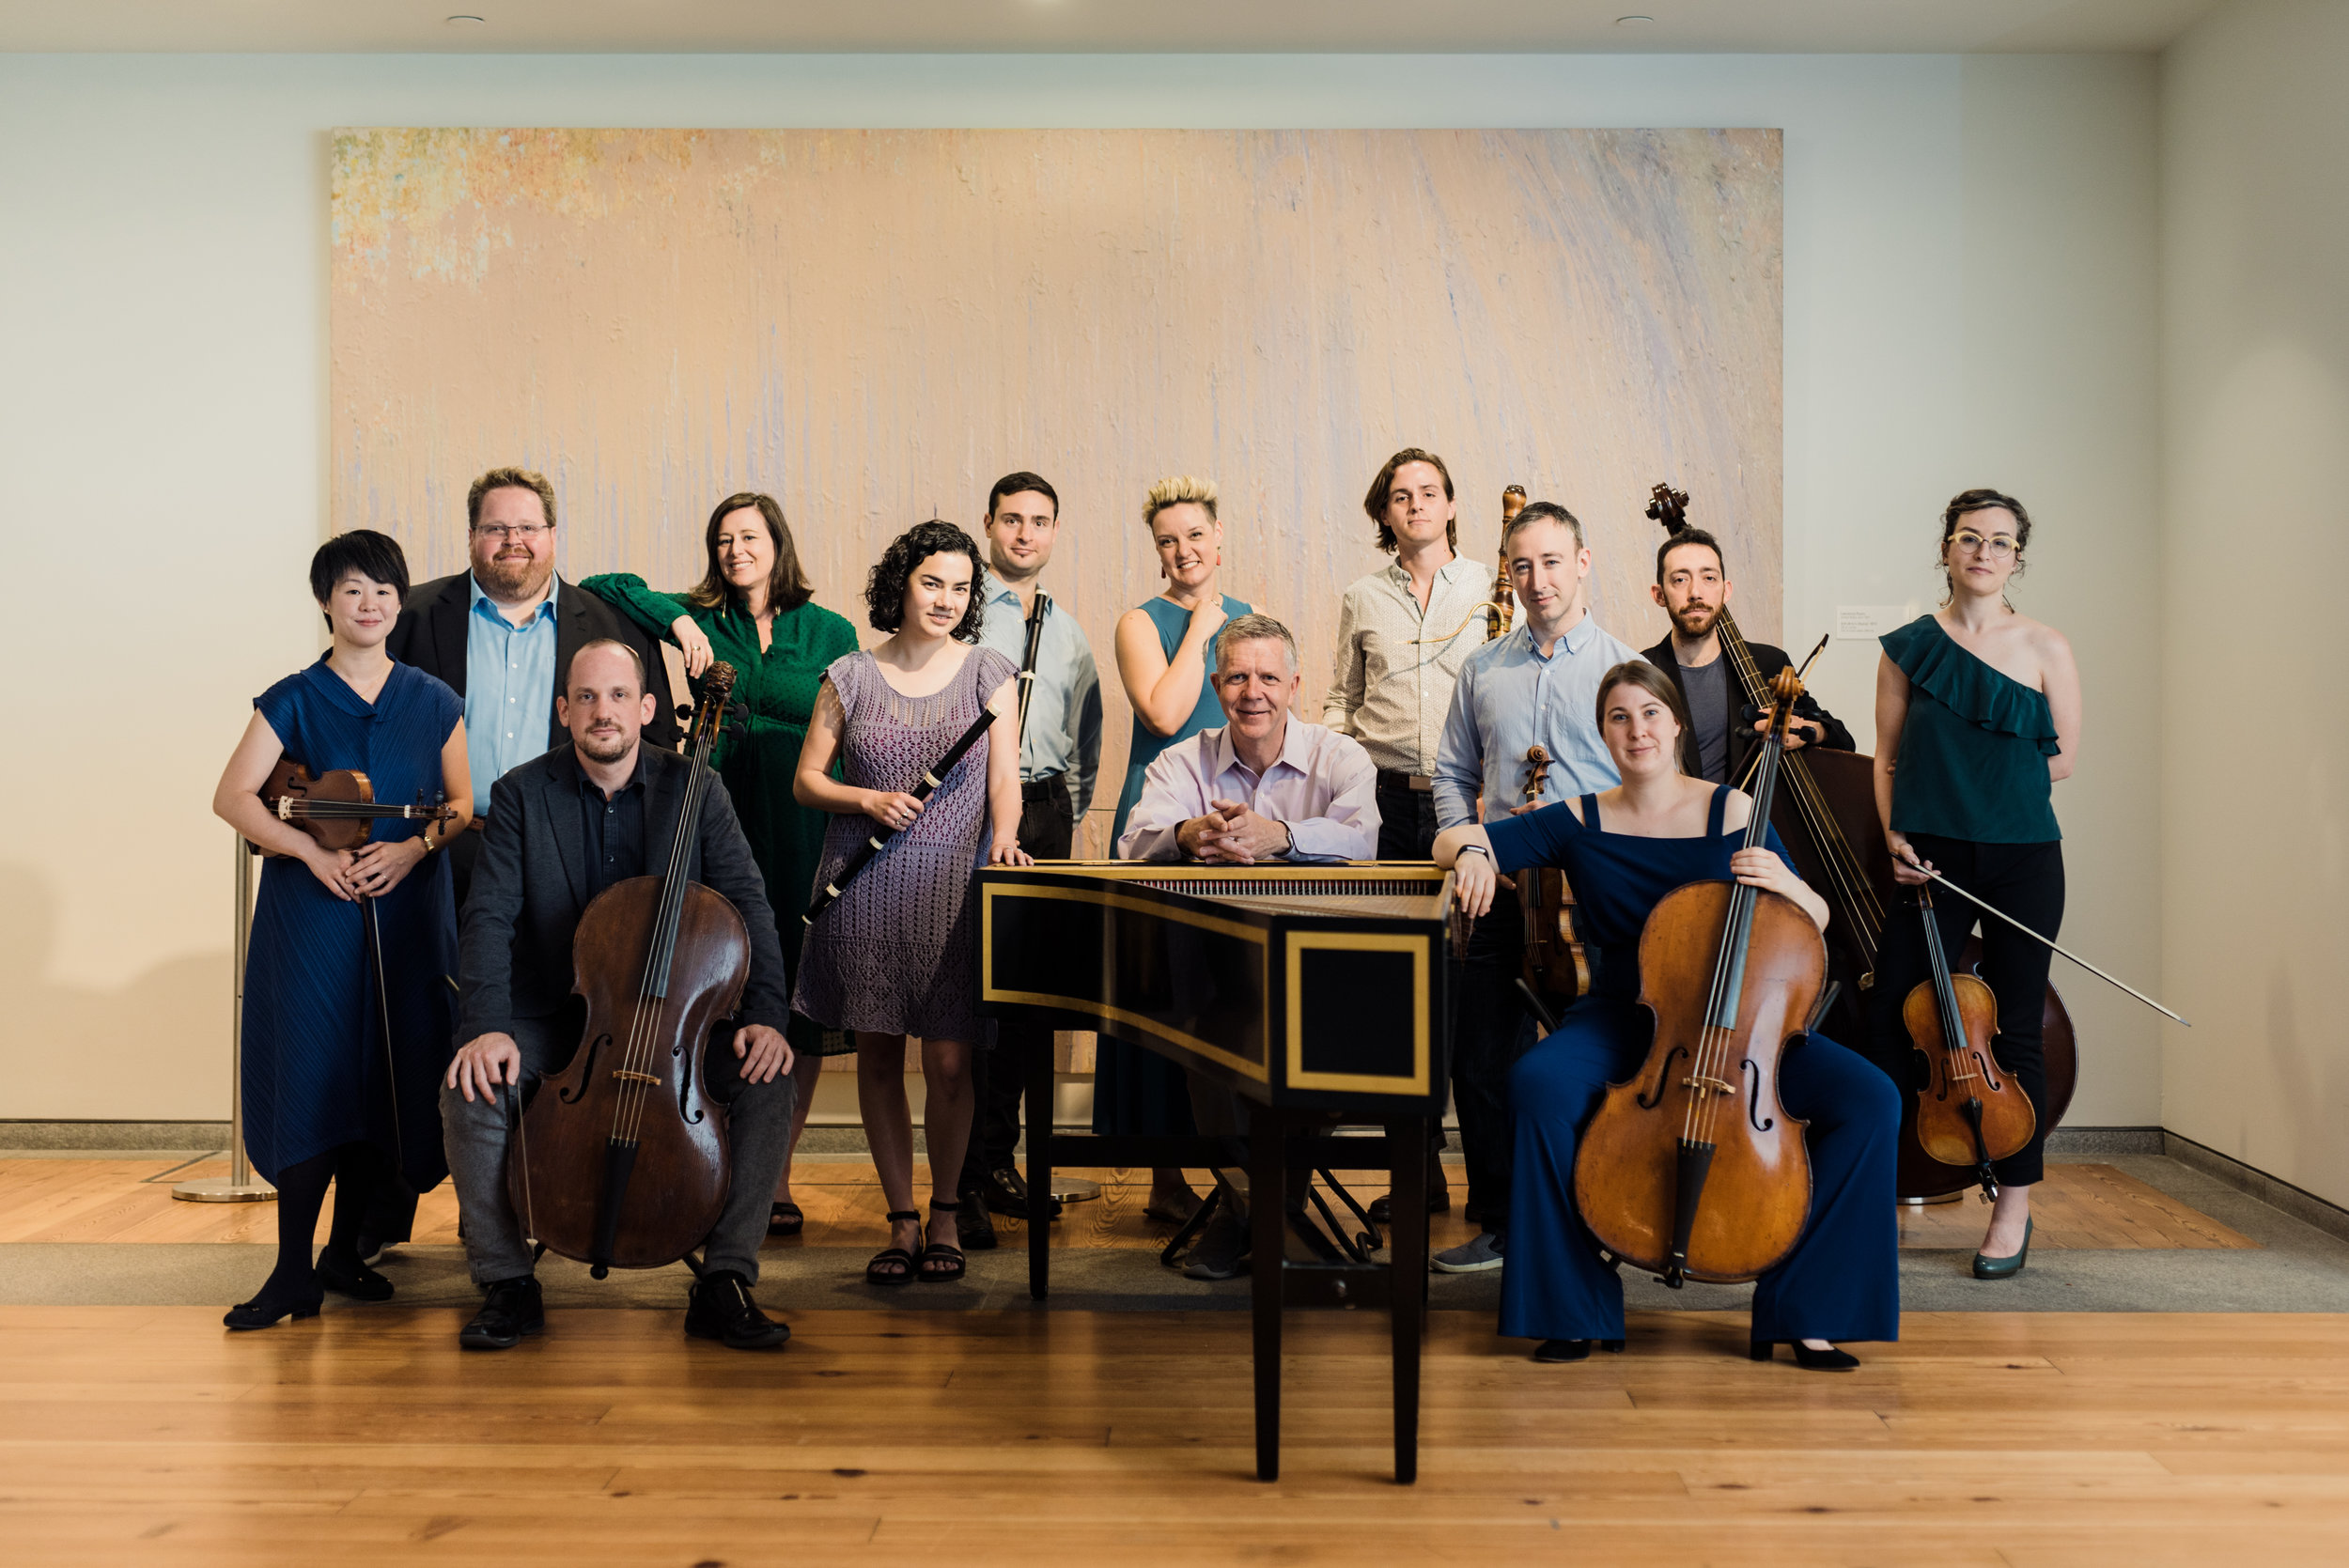 Ensemble photo with harpsichord at Portland Museum of Art